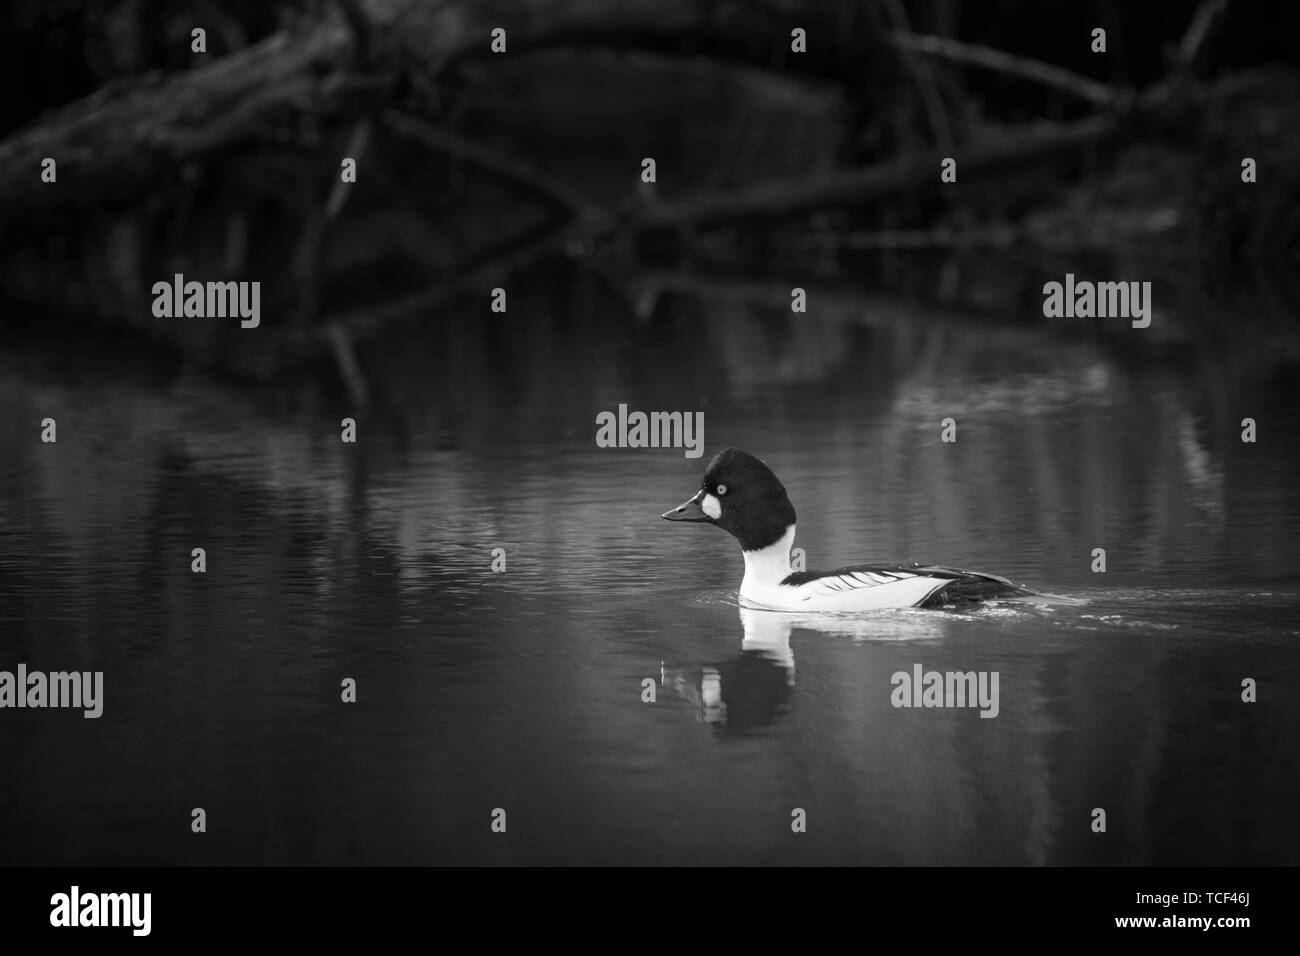 Side view of murk pewit floating on lake on blurred background near coast in black and white - Stock Image